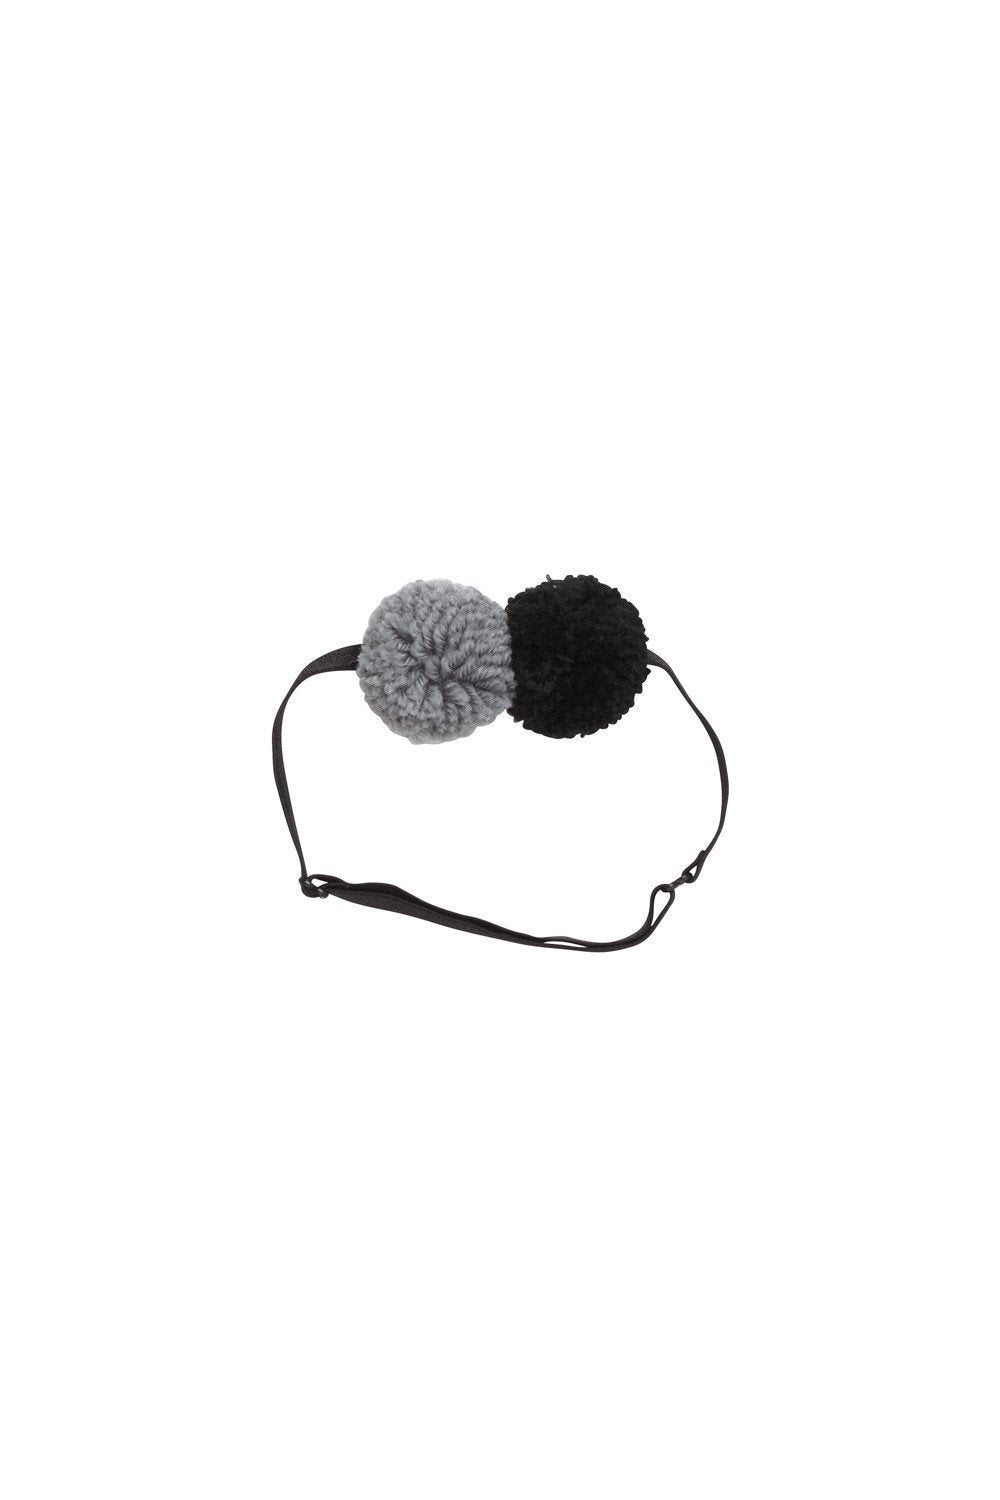 Yarn Pom Pom Baby - Grey/Black - PROJECT 6, modest fashion